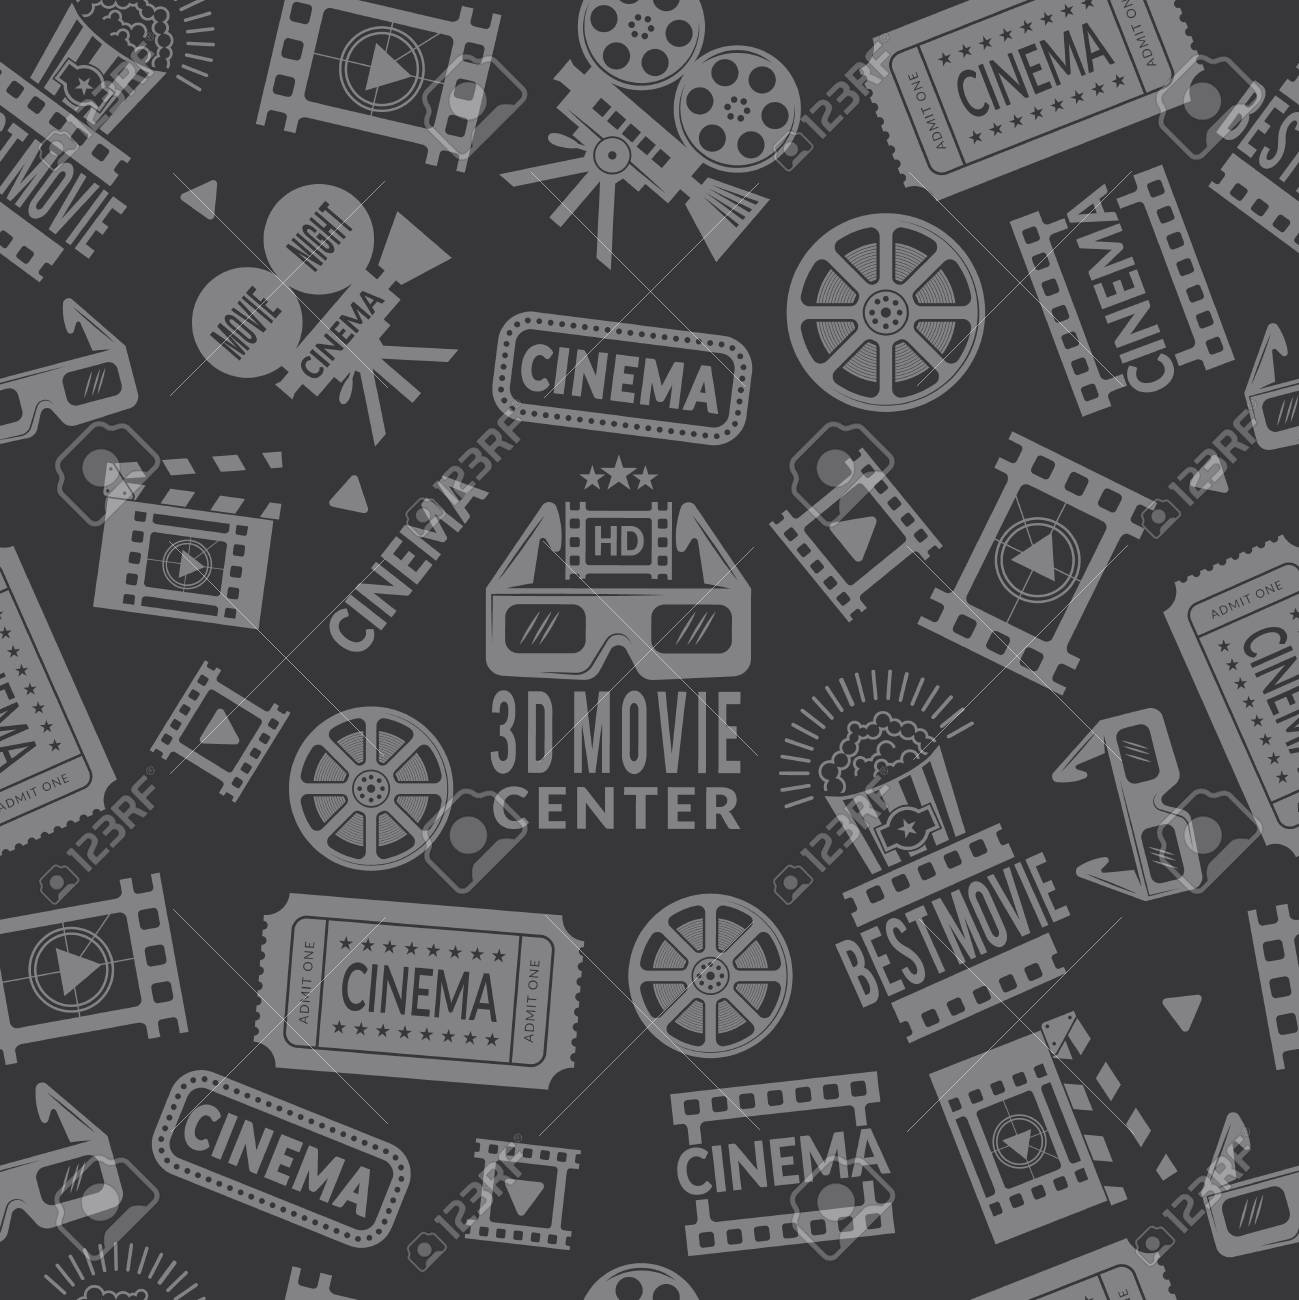 buy popular 9c9af 756c9 Cinema pattern. Seamless background with symbols of cinema and films  production. Vector cinema production